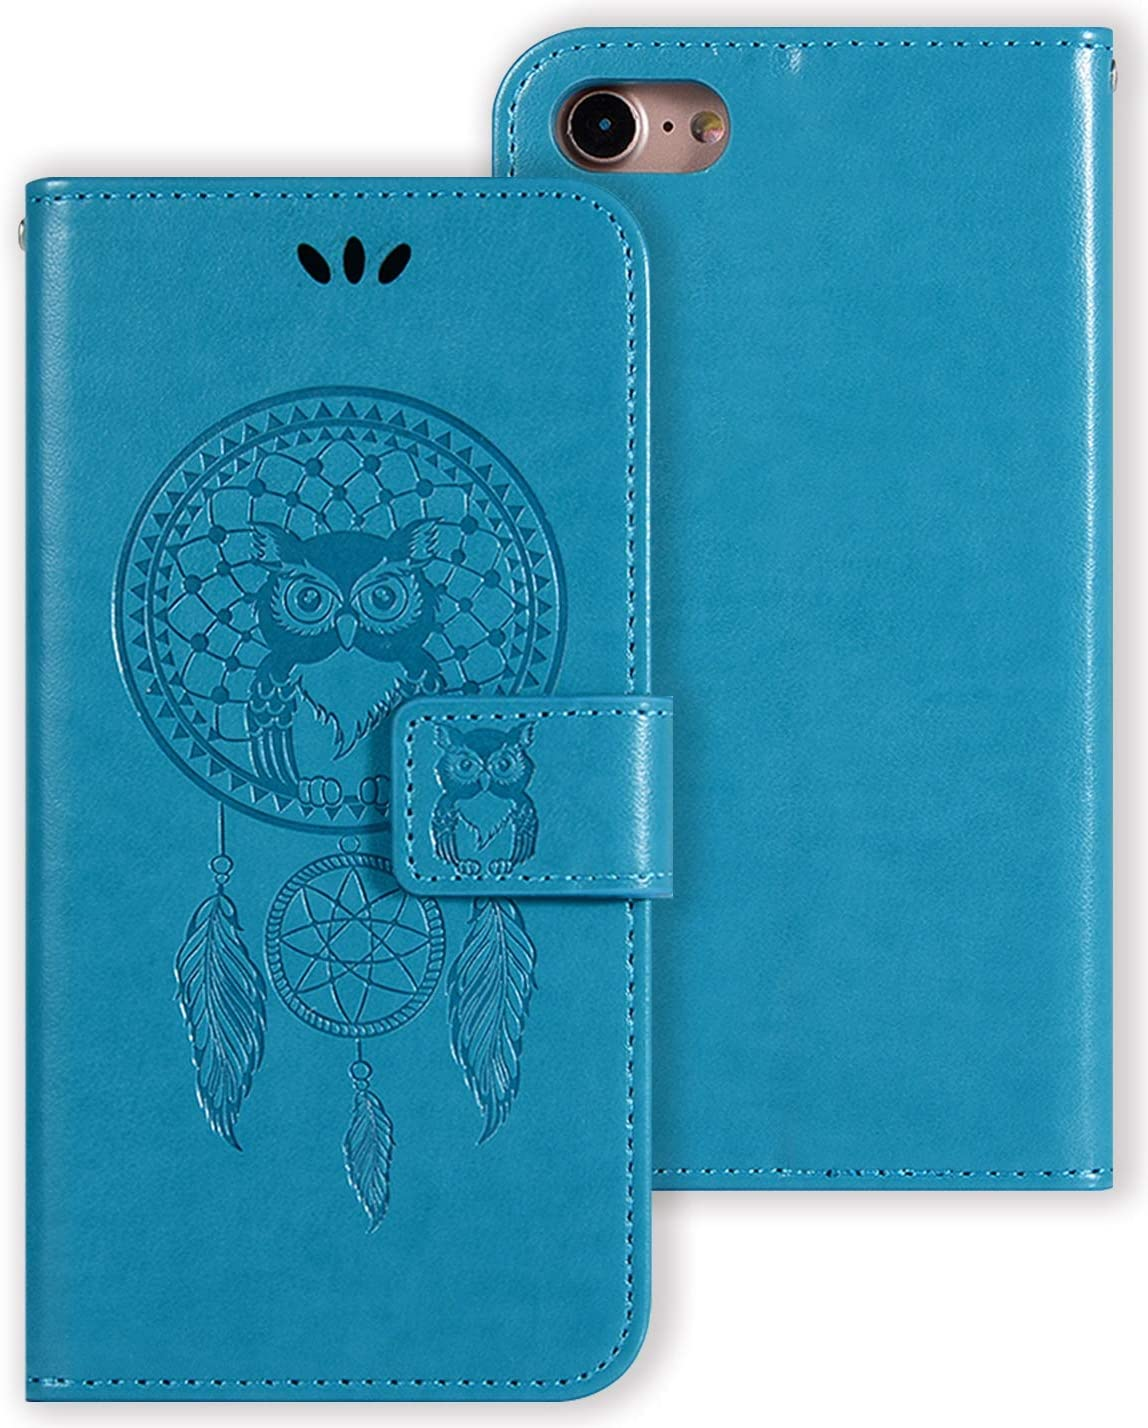 Vokuha Wallet Case for iPhone 6S Plus/iPhone 6 Plus for Girls Women | Magnetic Closure | Kickstand | Wrist Strap | Card Slots | Premium Leather | for iPhone 6S Plus/iPhone 6 Plus (Blue)